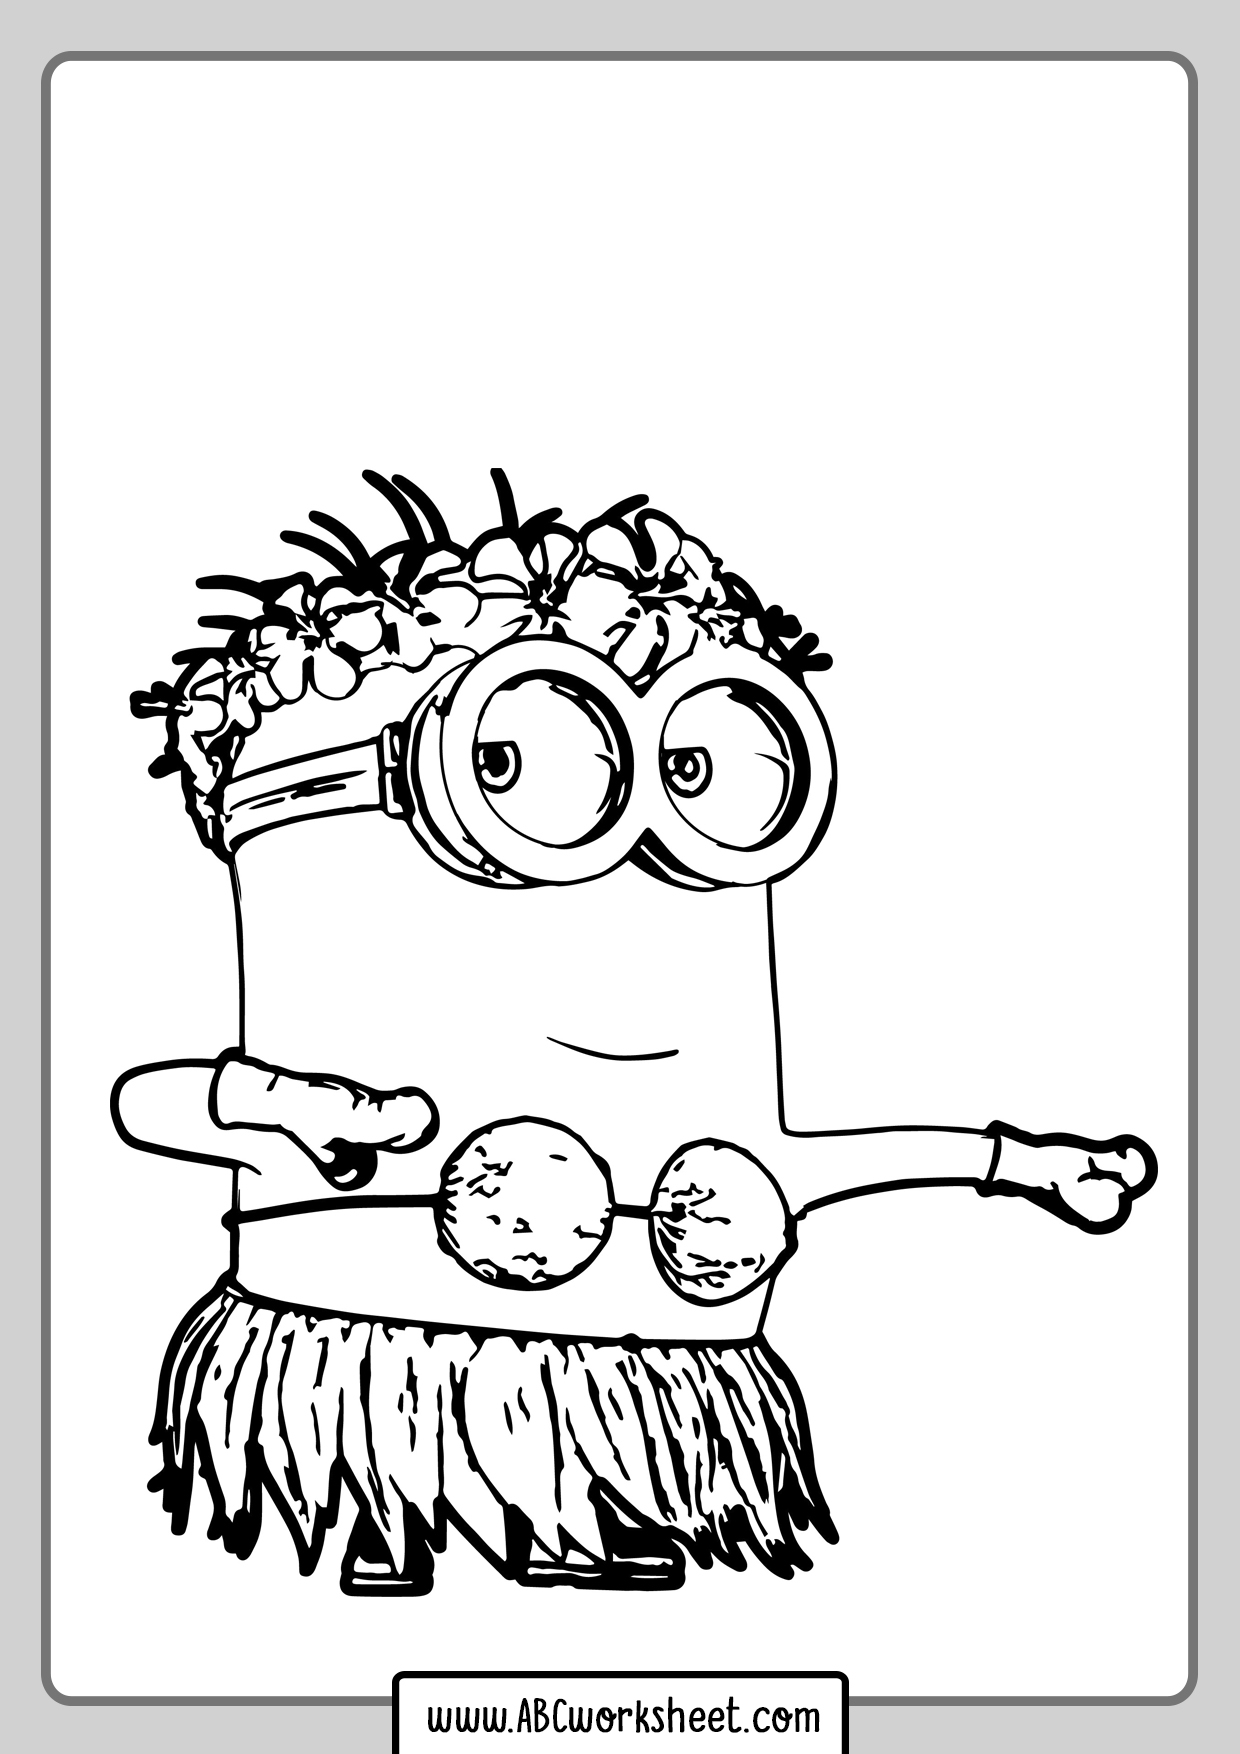 Minion Dancing Coloring Page